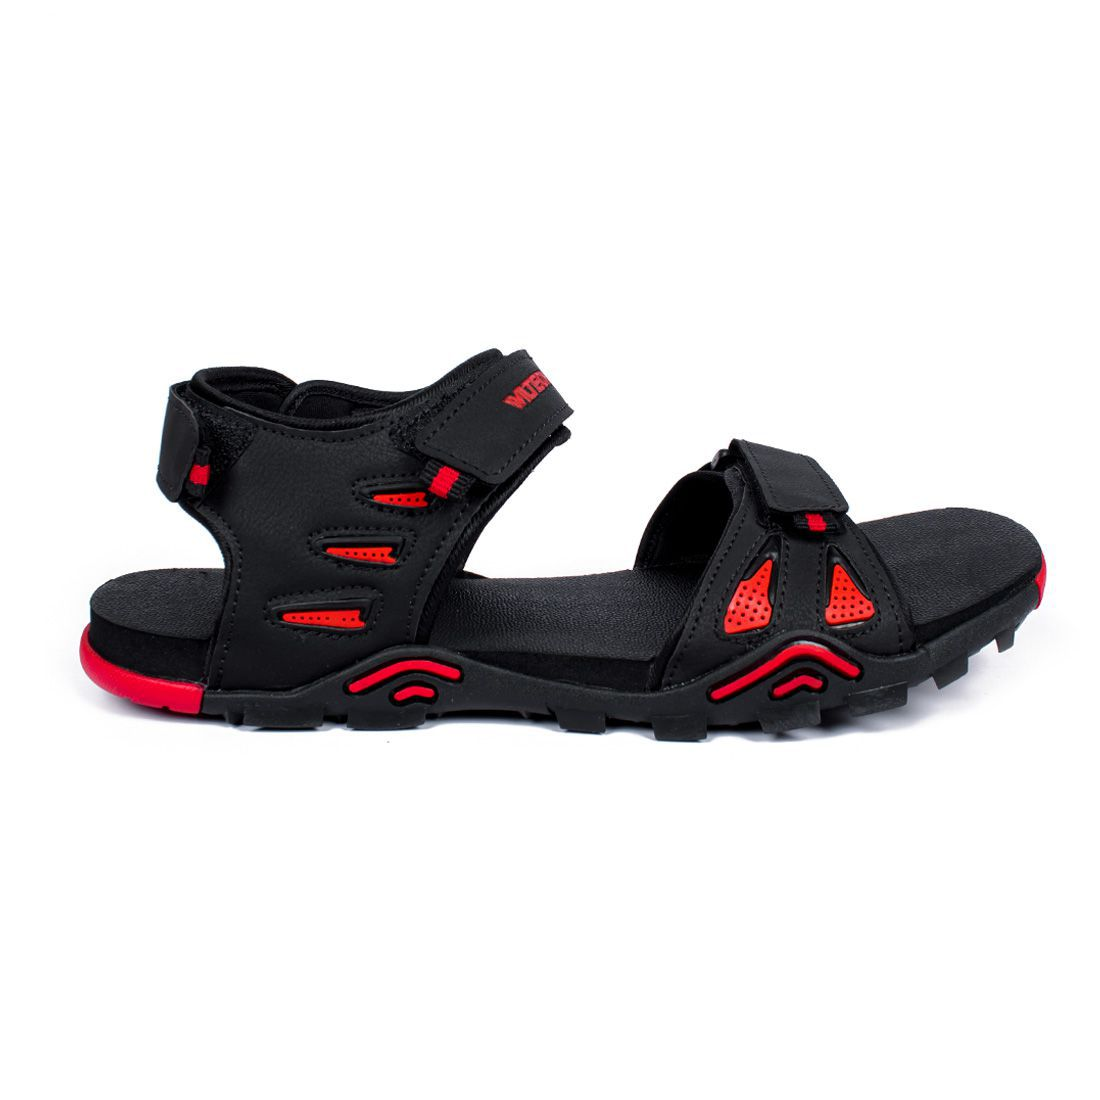 ASIAN ITALIC-02 Black Floater Sandals high quality cheap price find great sale online new 5yHNUzL